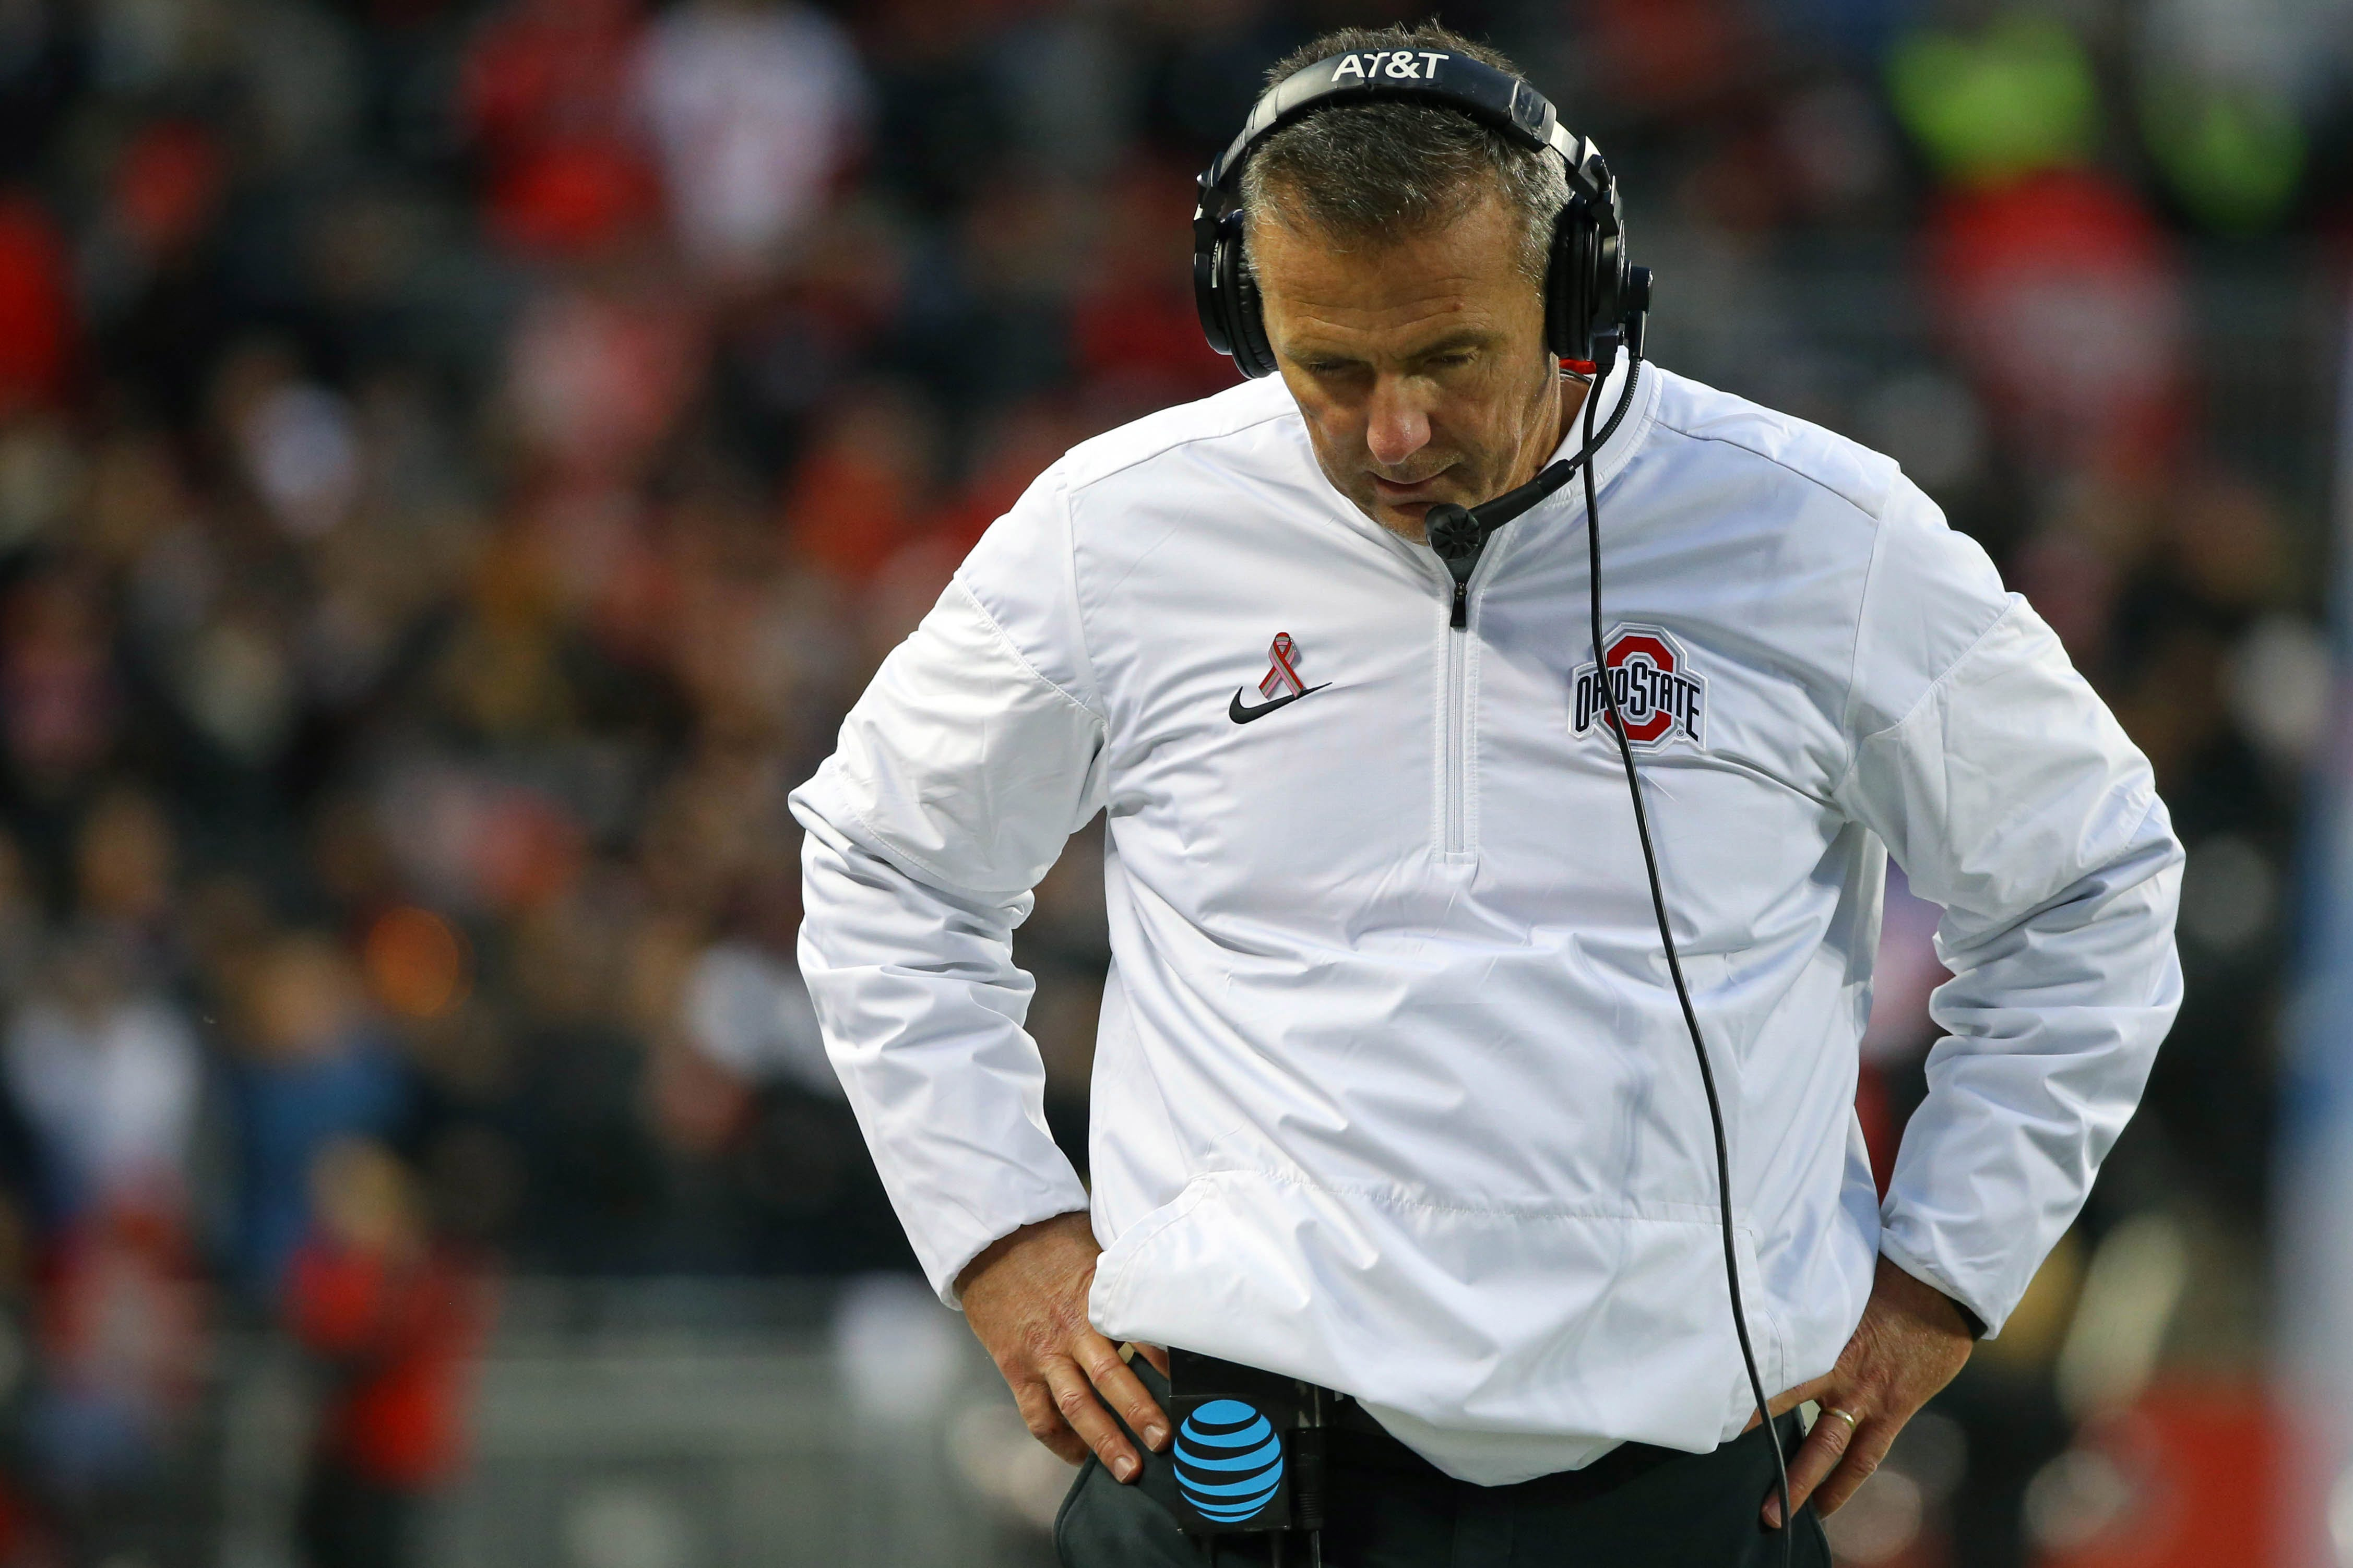 Ohio State football: What we know about Urban Meyer investigation